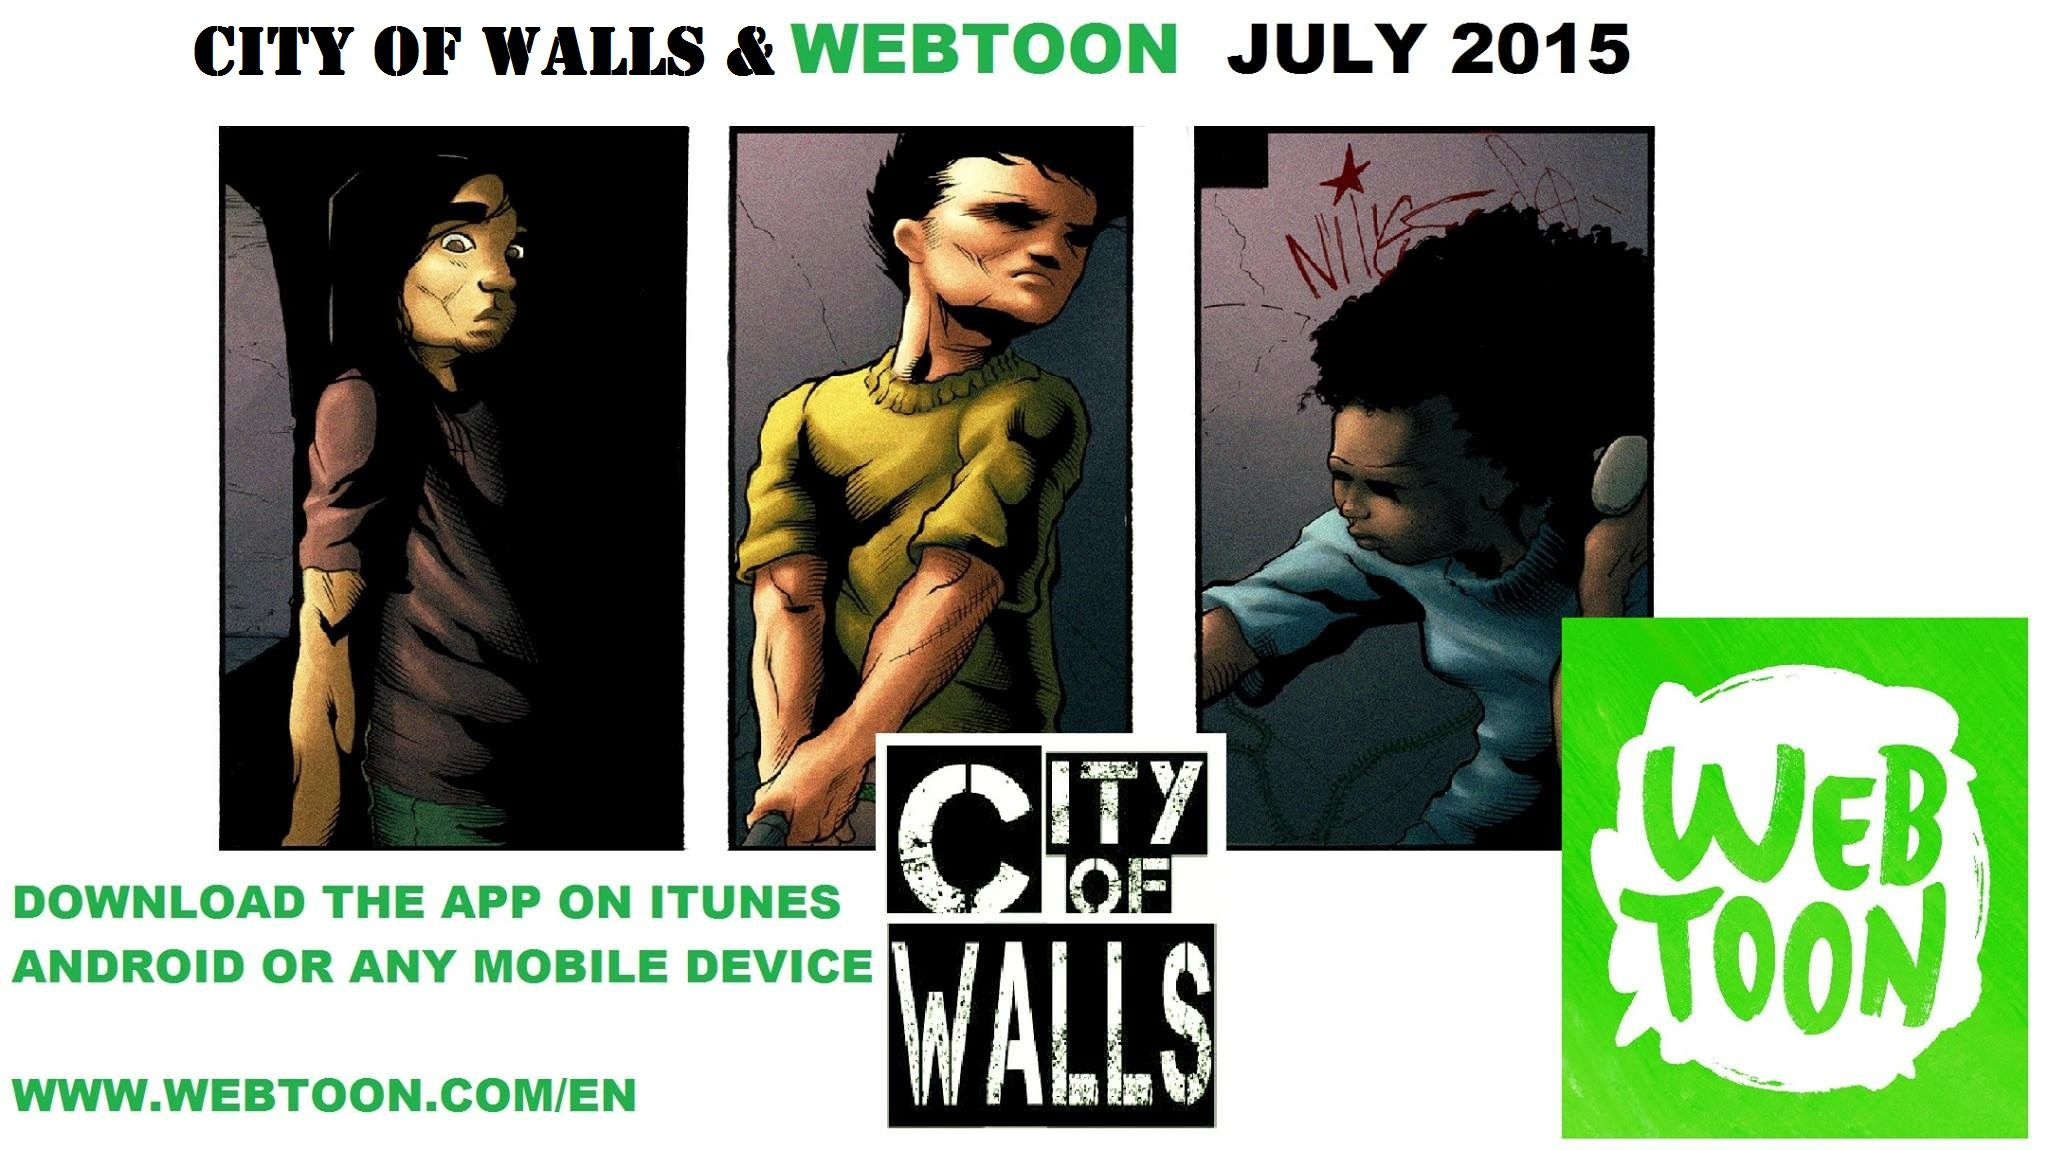 City of Walls Comes to Webtoon - Read it For Free! ~ What'cha Reading?